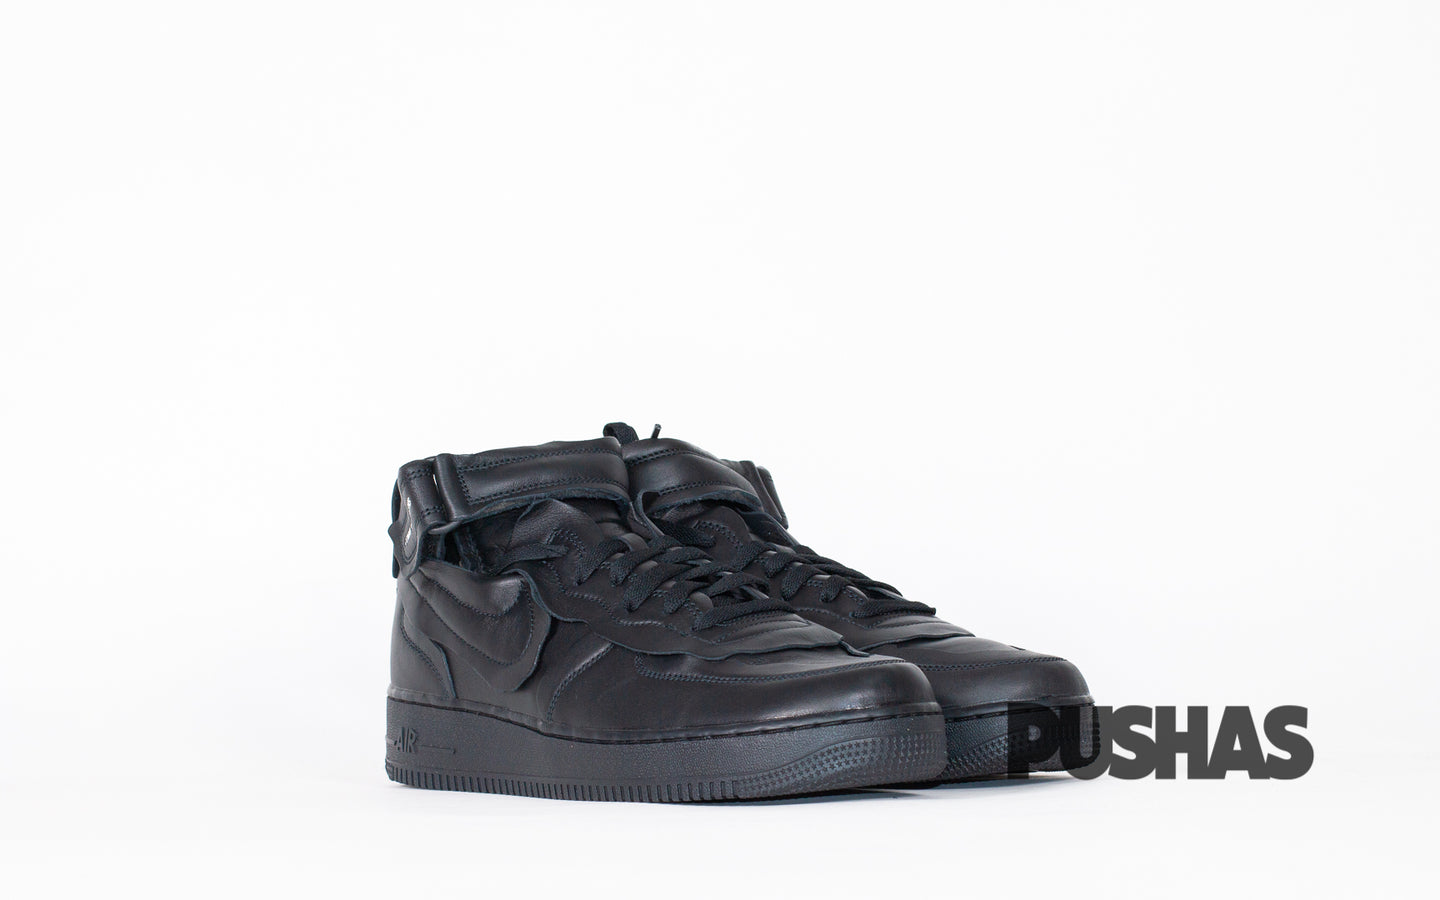 pushas-nike-Air-Force-1-Mid-Comme-des-Garcons-Black